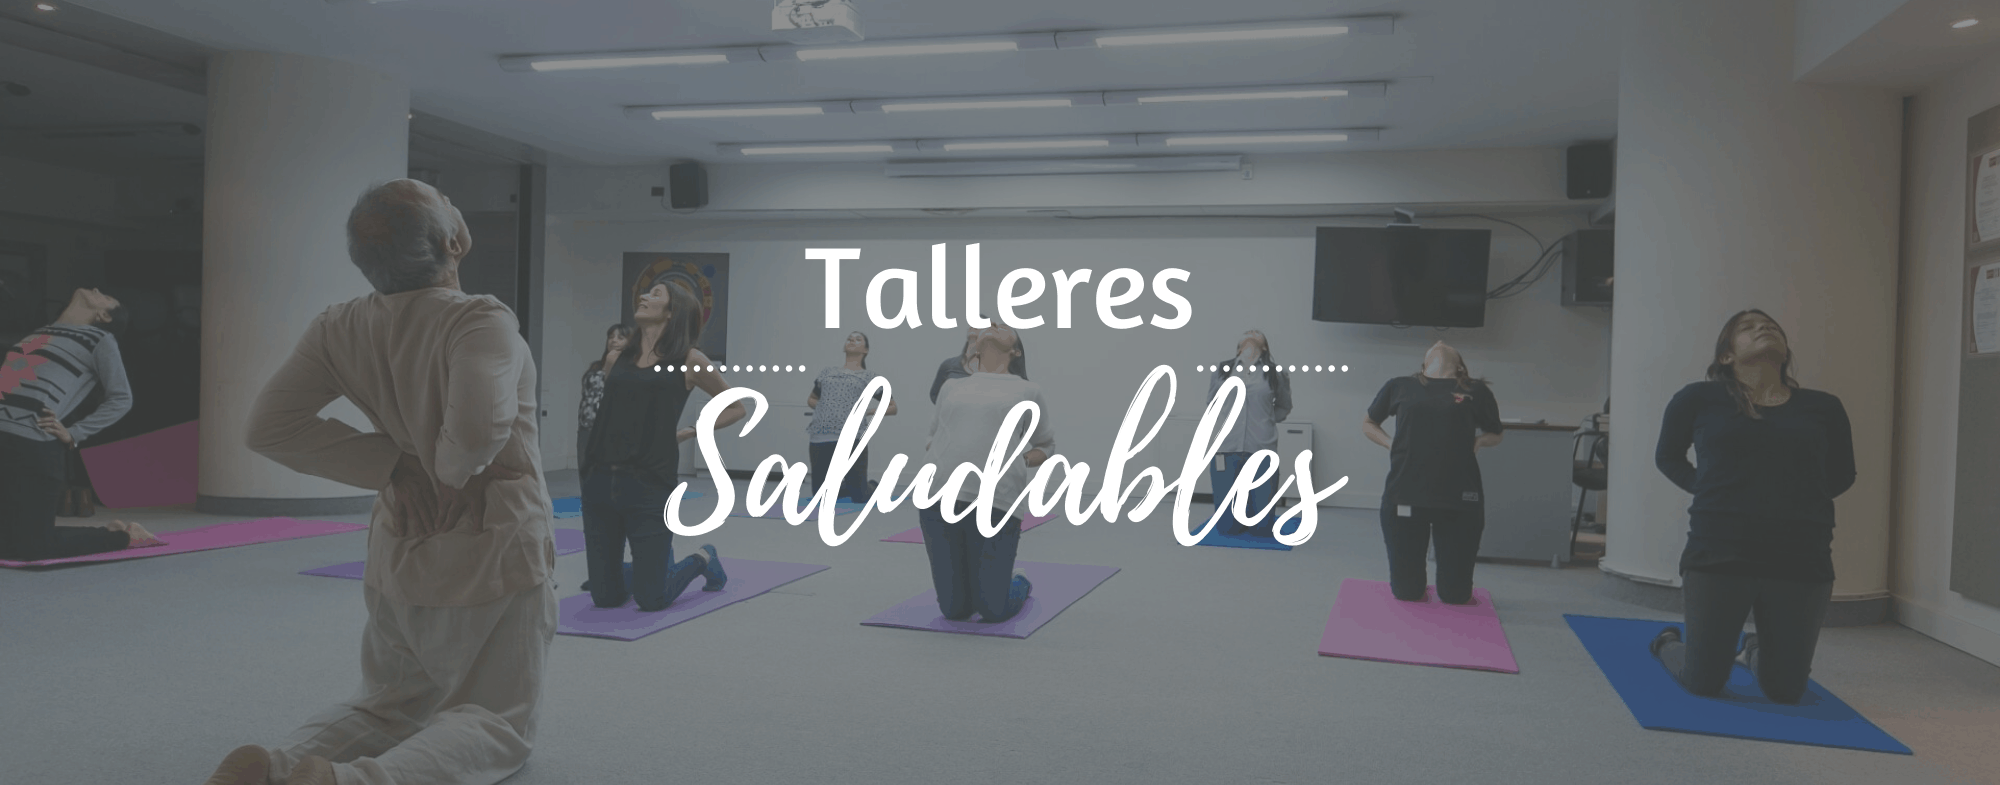 talleres-saludables-5